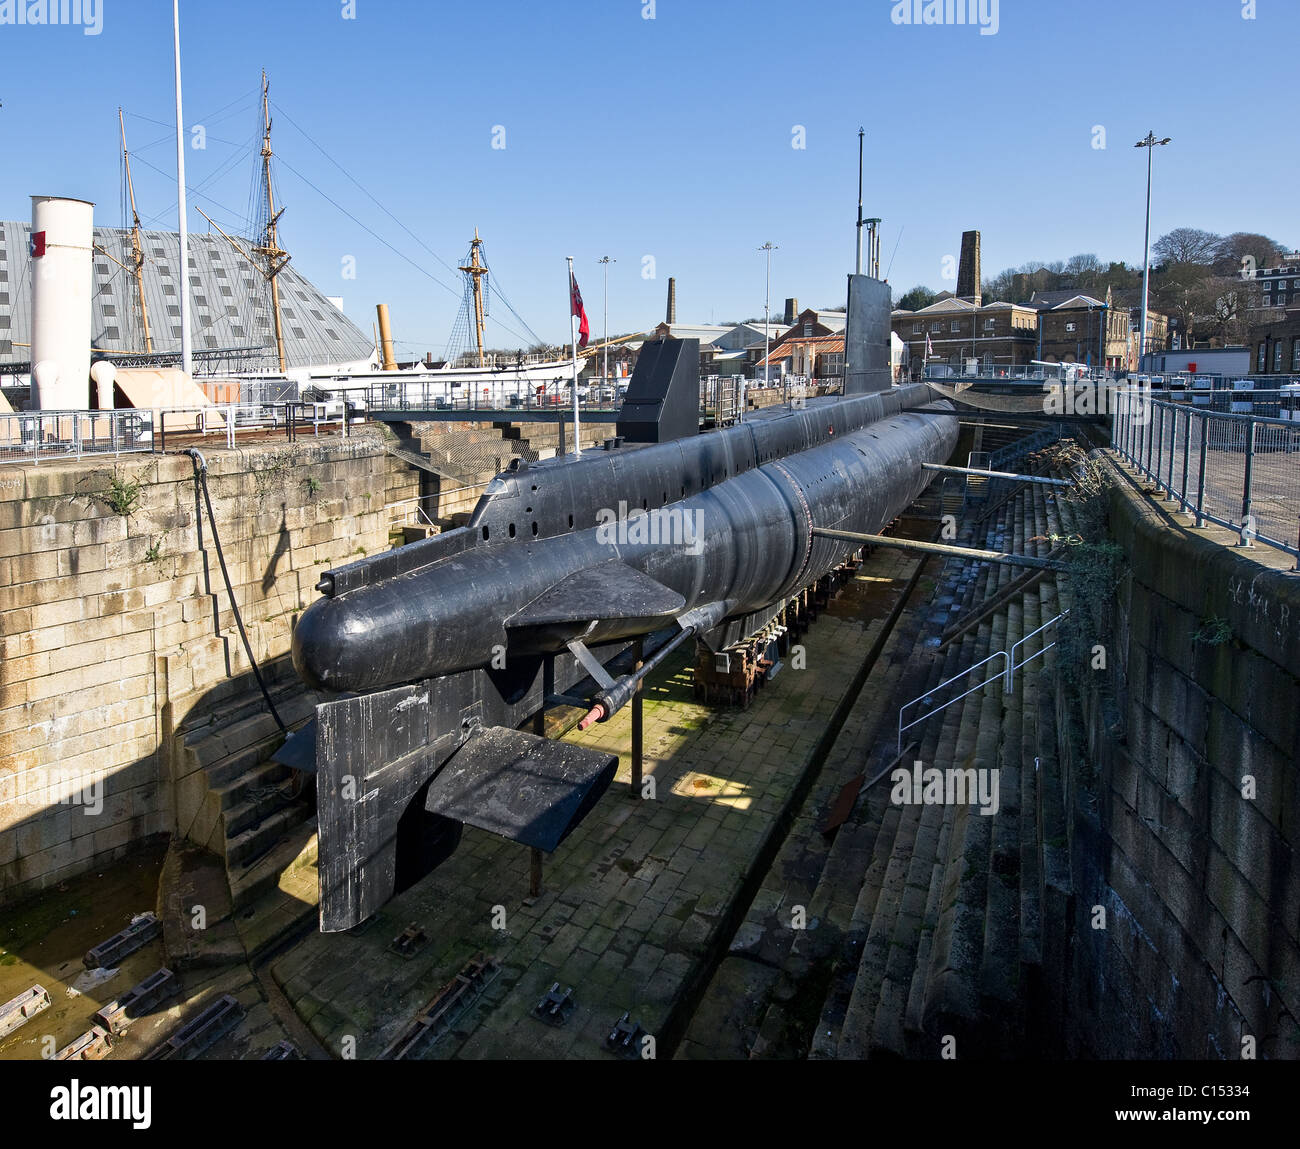 HM Submarine Ocelot in her dock at Chatham Historic Dockyard in Kent. - Stock Image